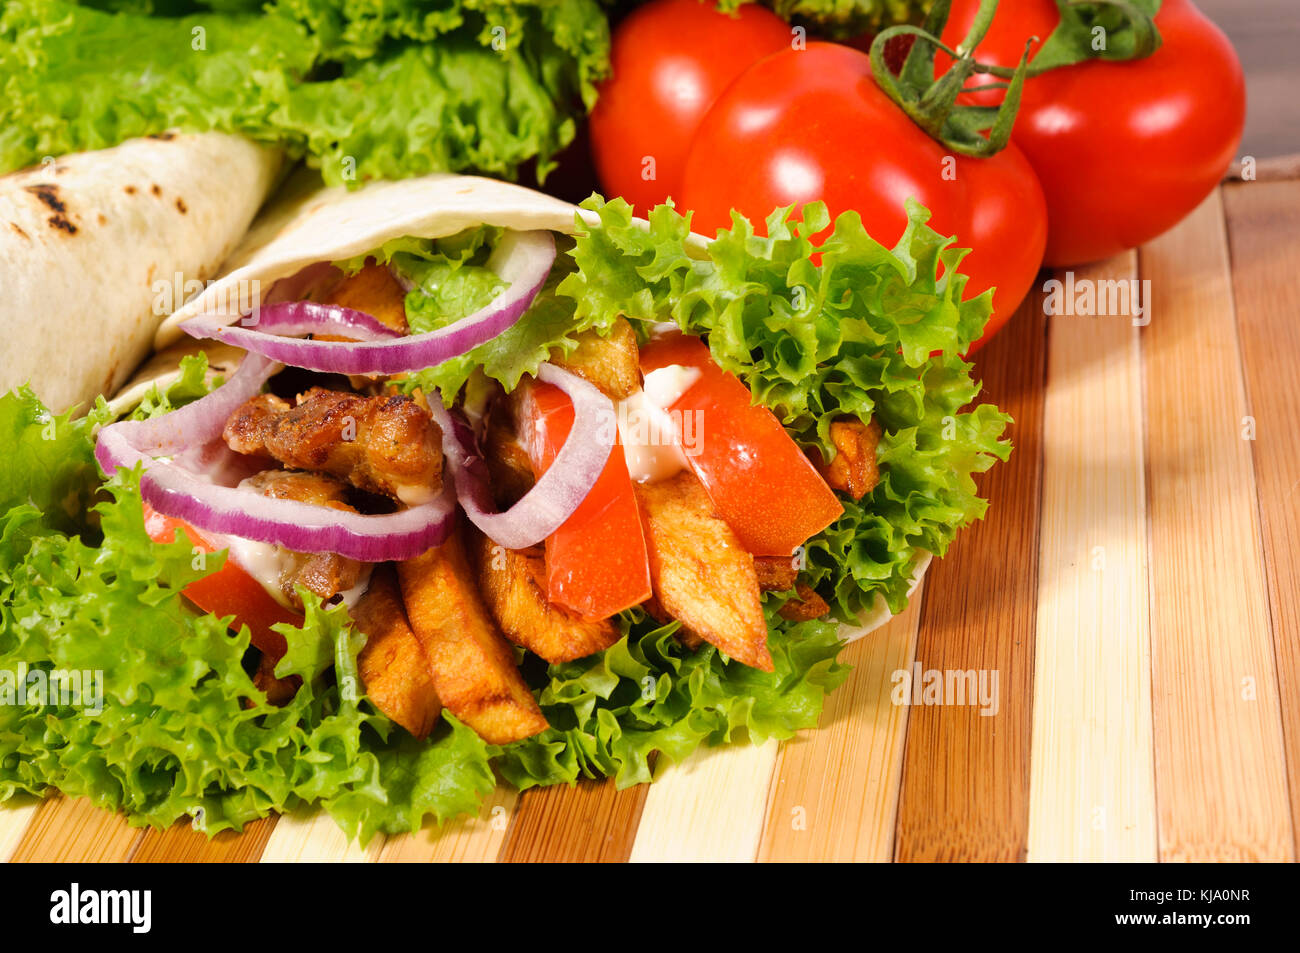 Tortillas with meat and vegetables - Stock Image